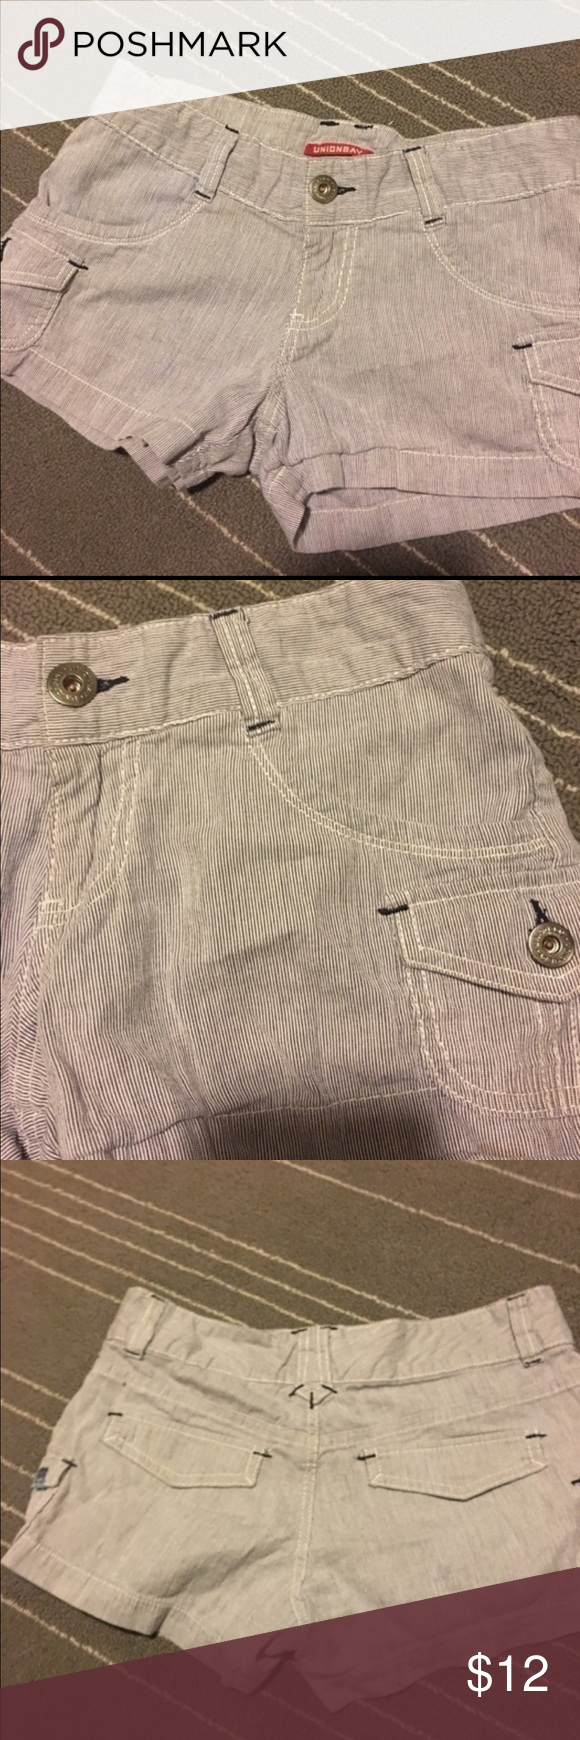 💕Retro shorts Unionbay retro 90s style shorts. Mights even be real vintage or close to it not sure. Size 3 cotton front open pockets and mini cargo pockets that button. The back is design pockets not actual opening pockets. I can't tell if this is blue and white, gray and white, or something else. Please be happy on any colors. Good overall preowned shape. No returns final sale. UNIONBAY Shorts Jean Shorts